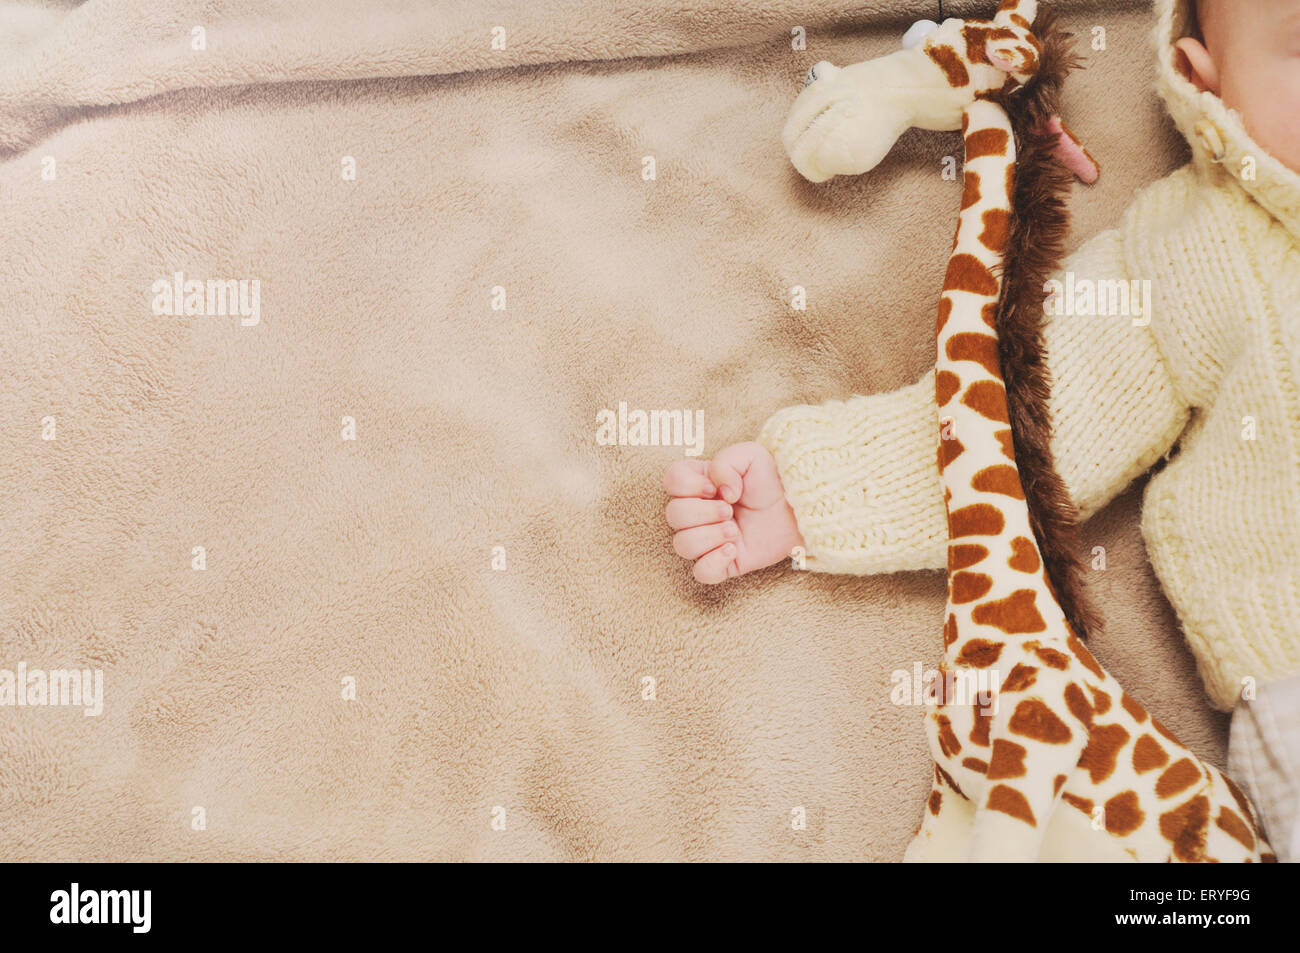 sleeping cute newborn baby, maternity concept, soft image of beautiful family - Stock Image